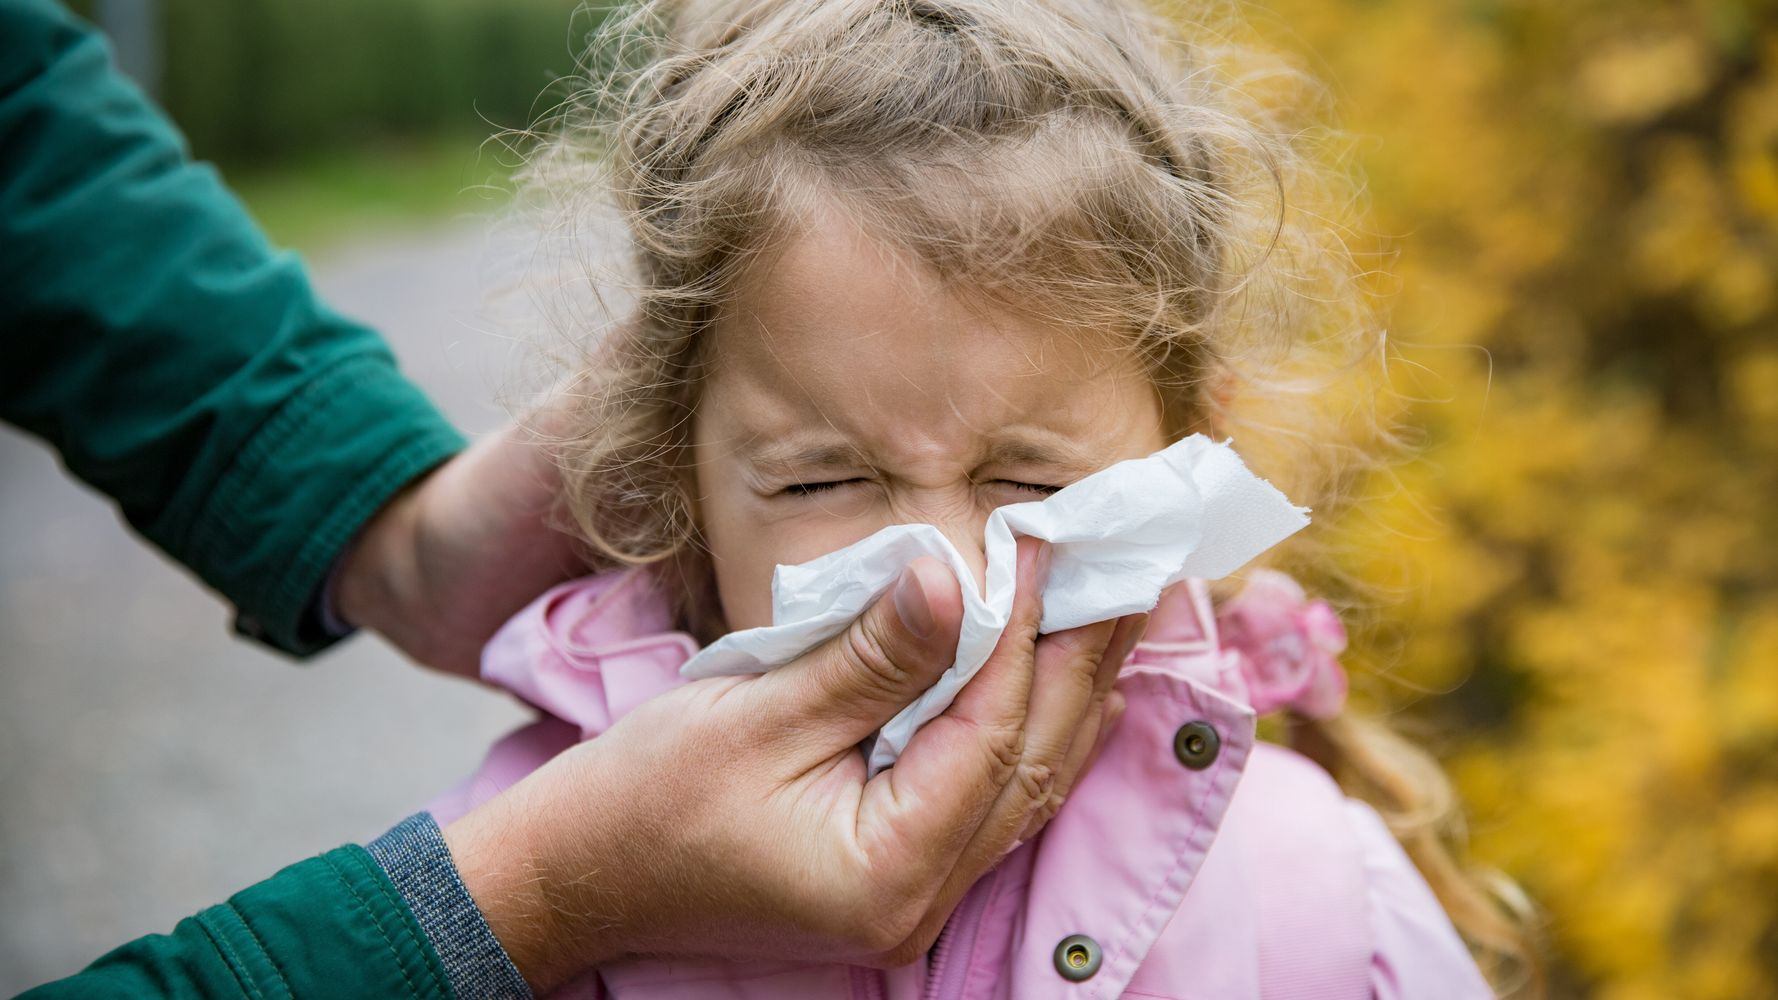 New Study Suggests Common Cold Antibodies Could Protect Against COVID-19